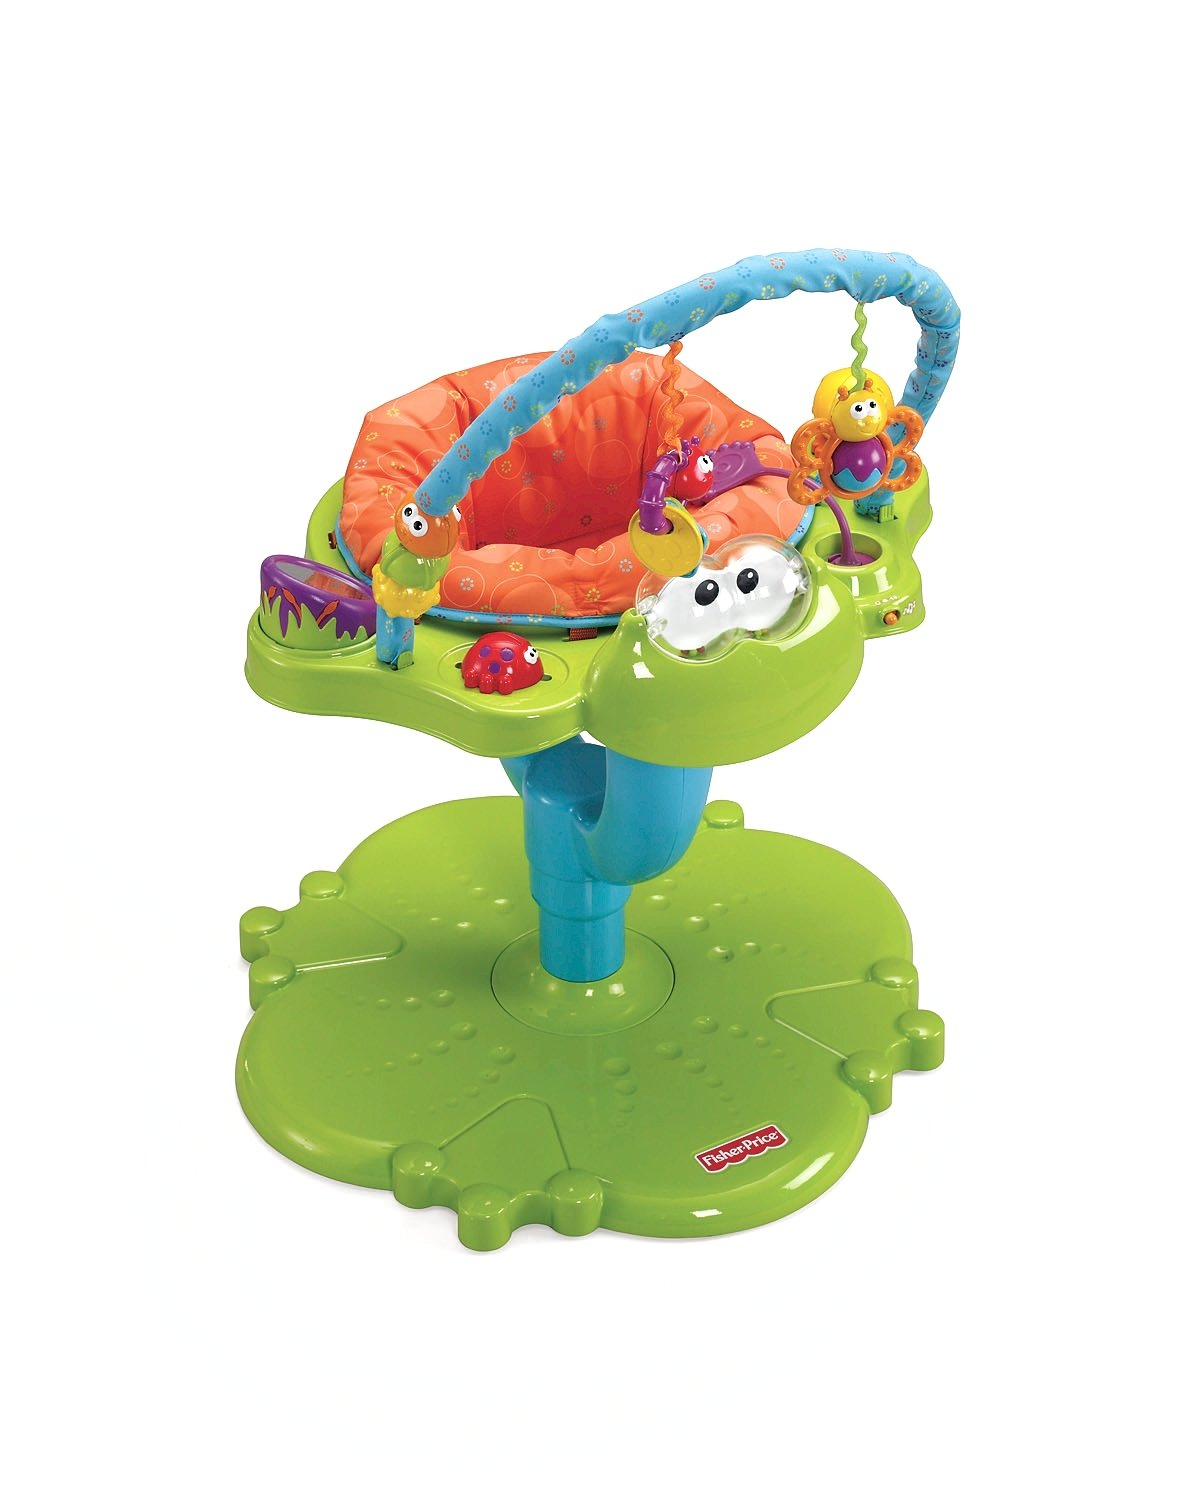 sauteuse fisher price mon premier tambourin fisher price fisher price pas cher prix c with. Black Bedroom Furniture Sets. Home Design Ideas